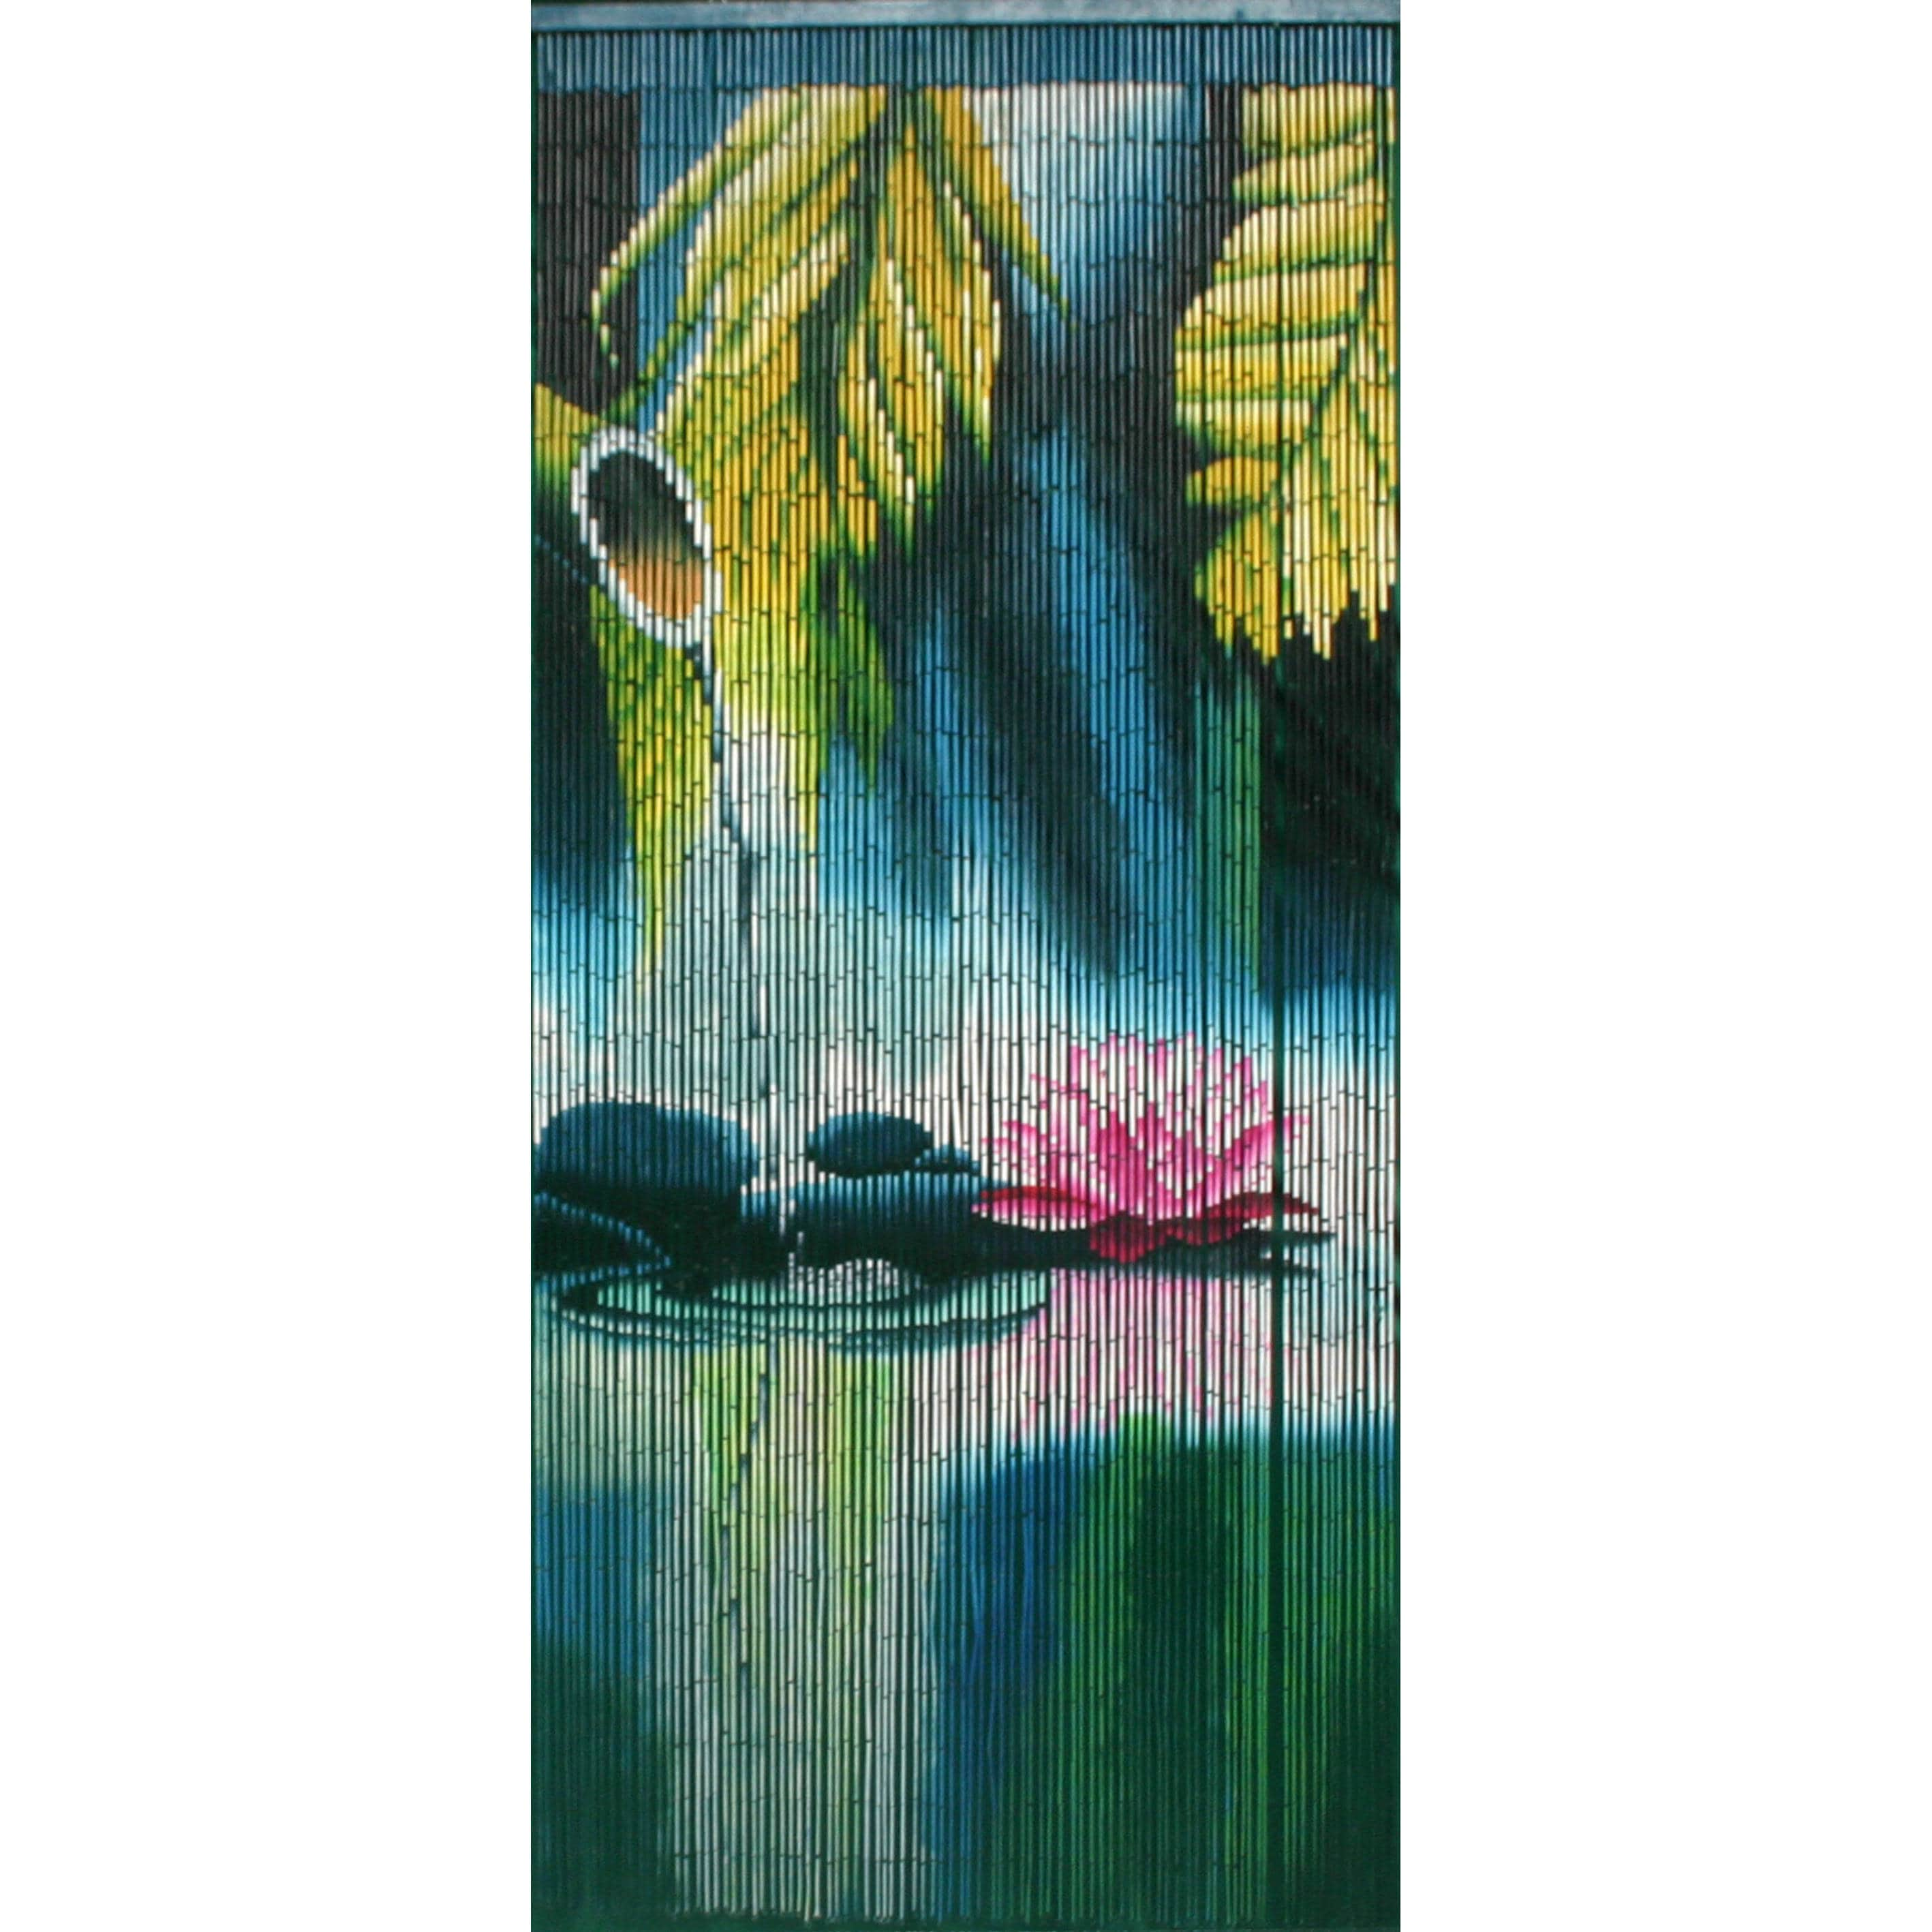 Bamboo 54 Serenity Nature Meditation Curtain (multicolor)...